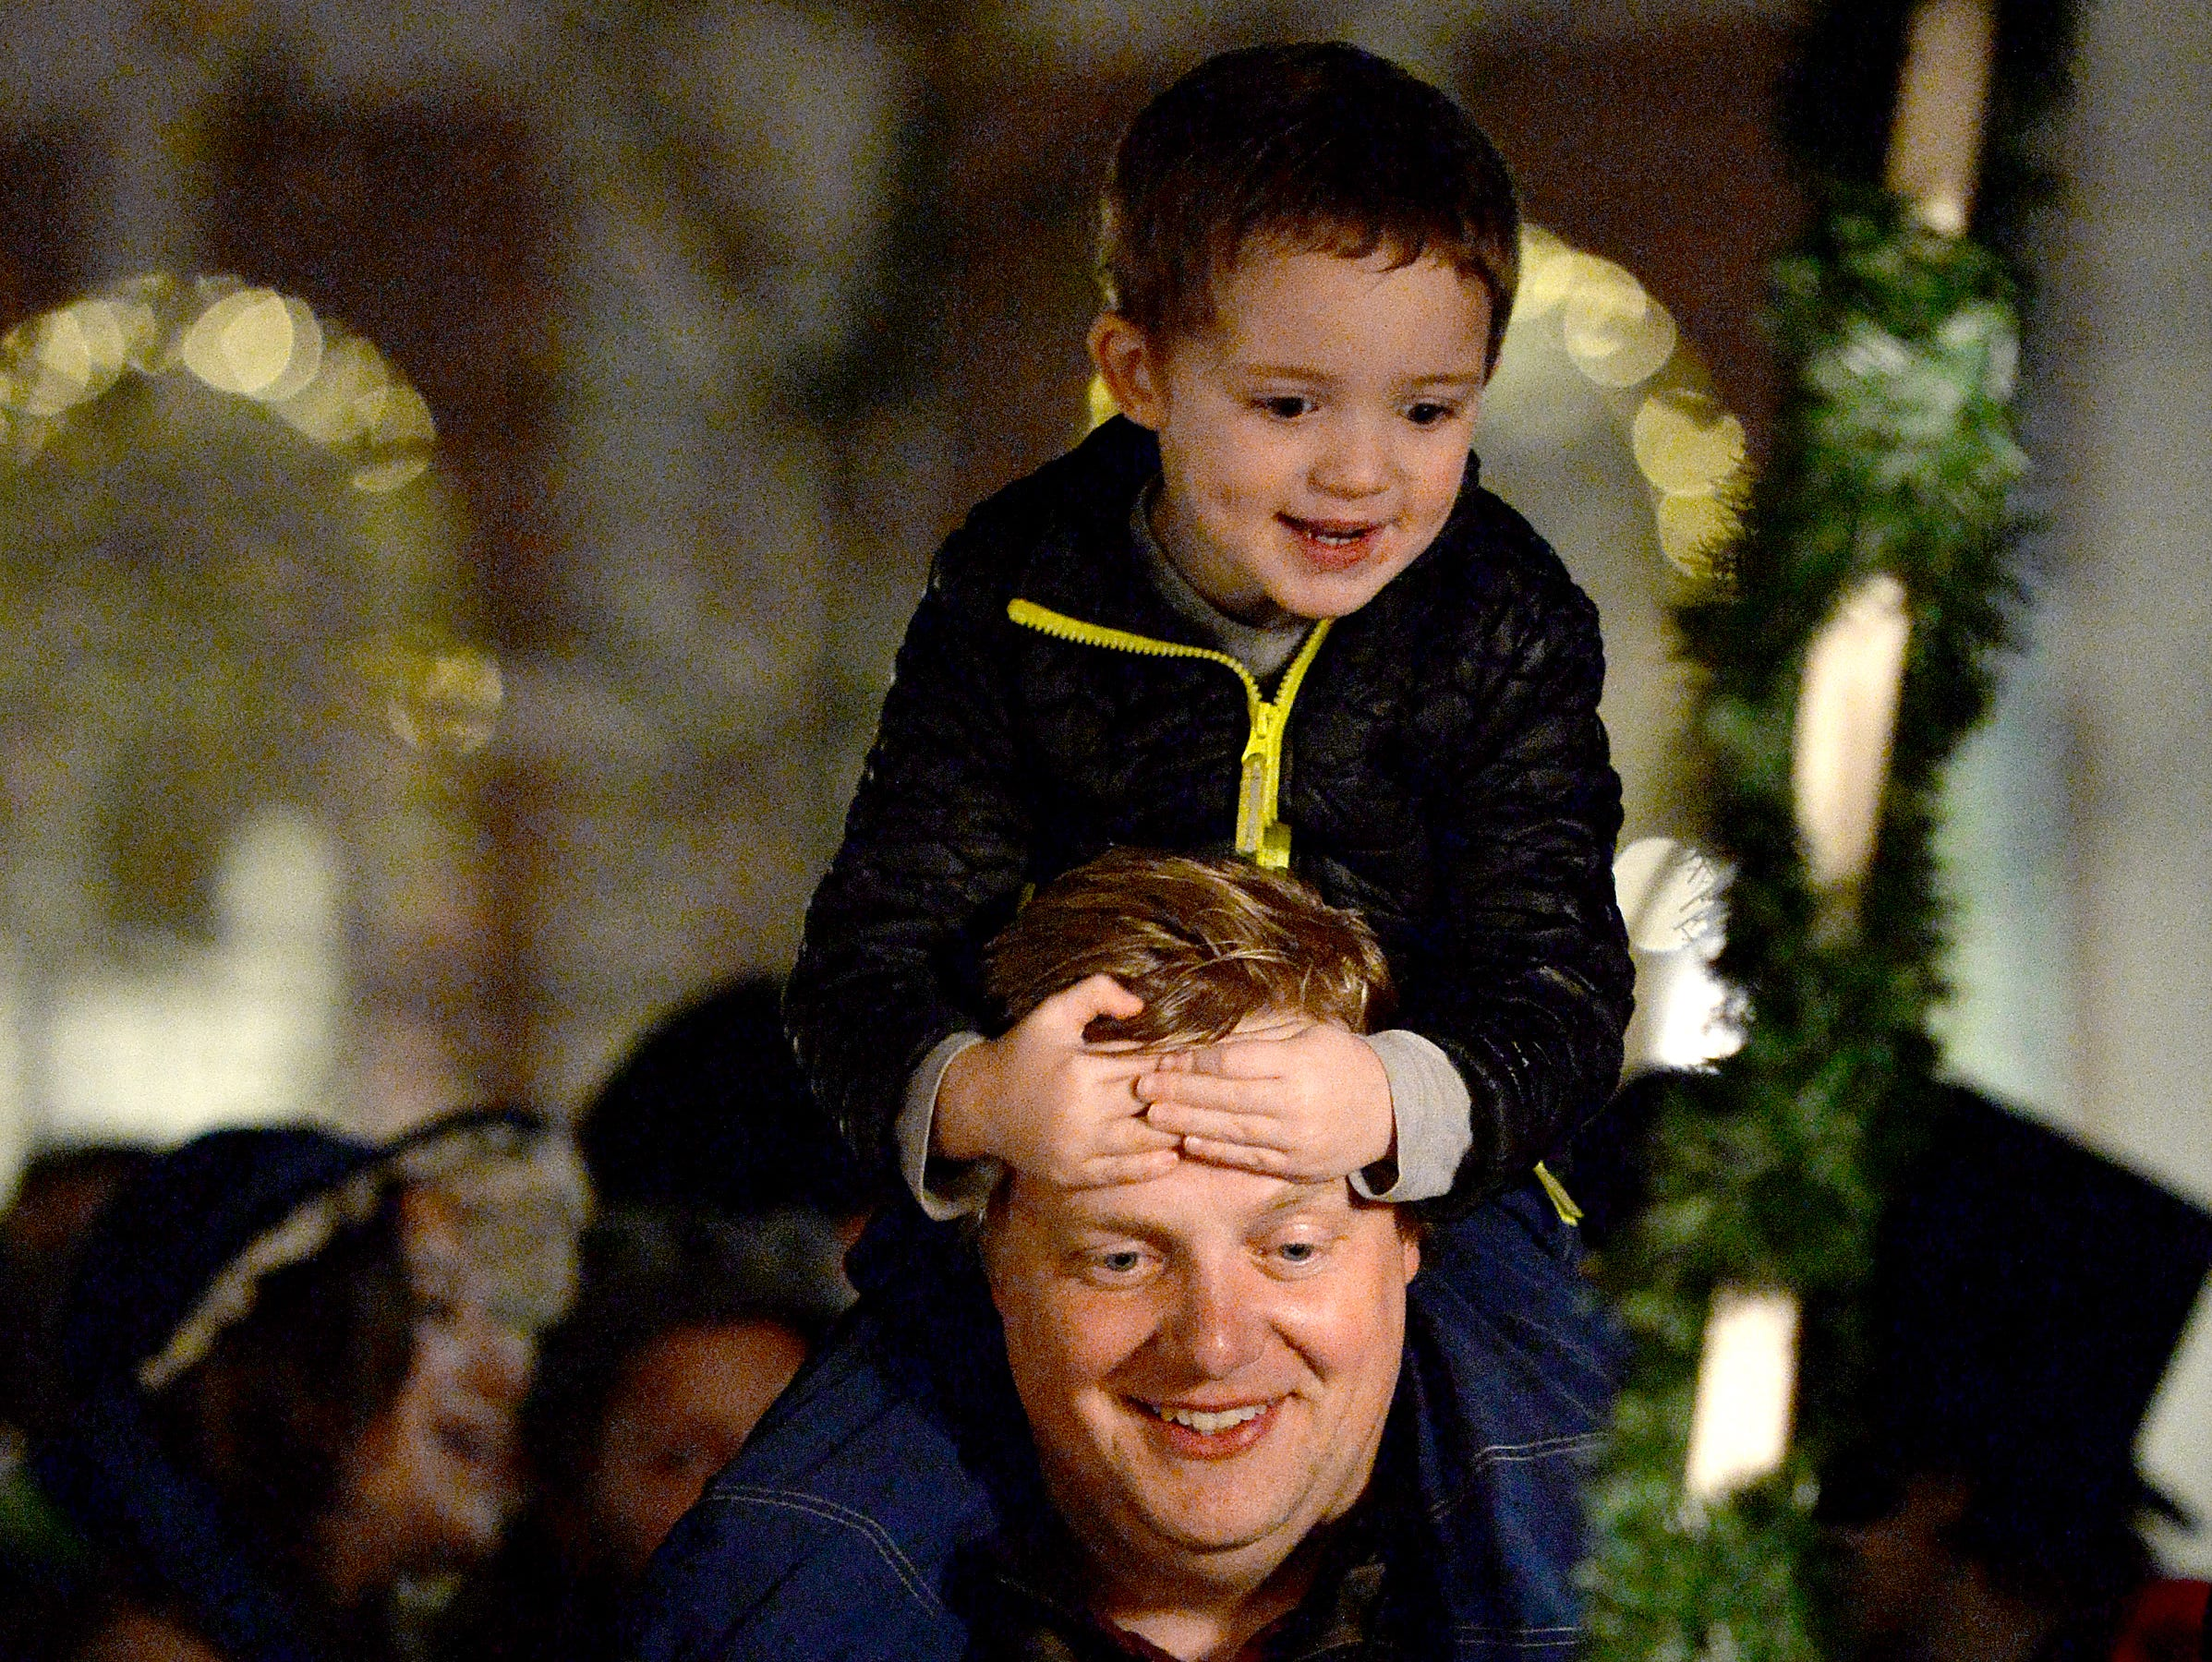 Drake Fowler, chief business and operations officer at the North Carolina Arboretum, sings along to carols with his children Jack, 3, and Adelaide, 5, during the annual Biltmore Village Dickens Festival on Nov. 30, 2018. The arboretum helped this year with the lighting design in Biltmore Village.